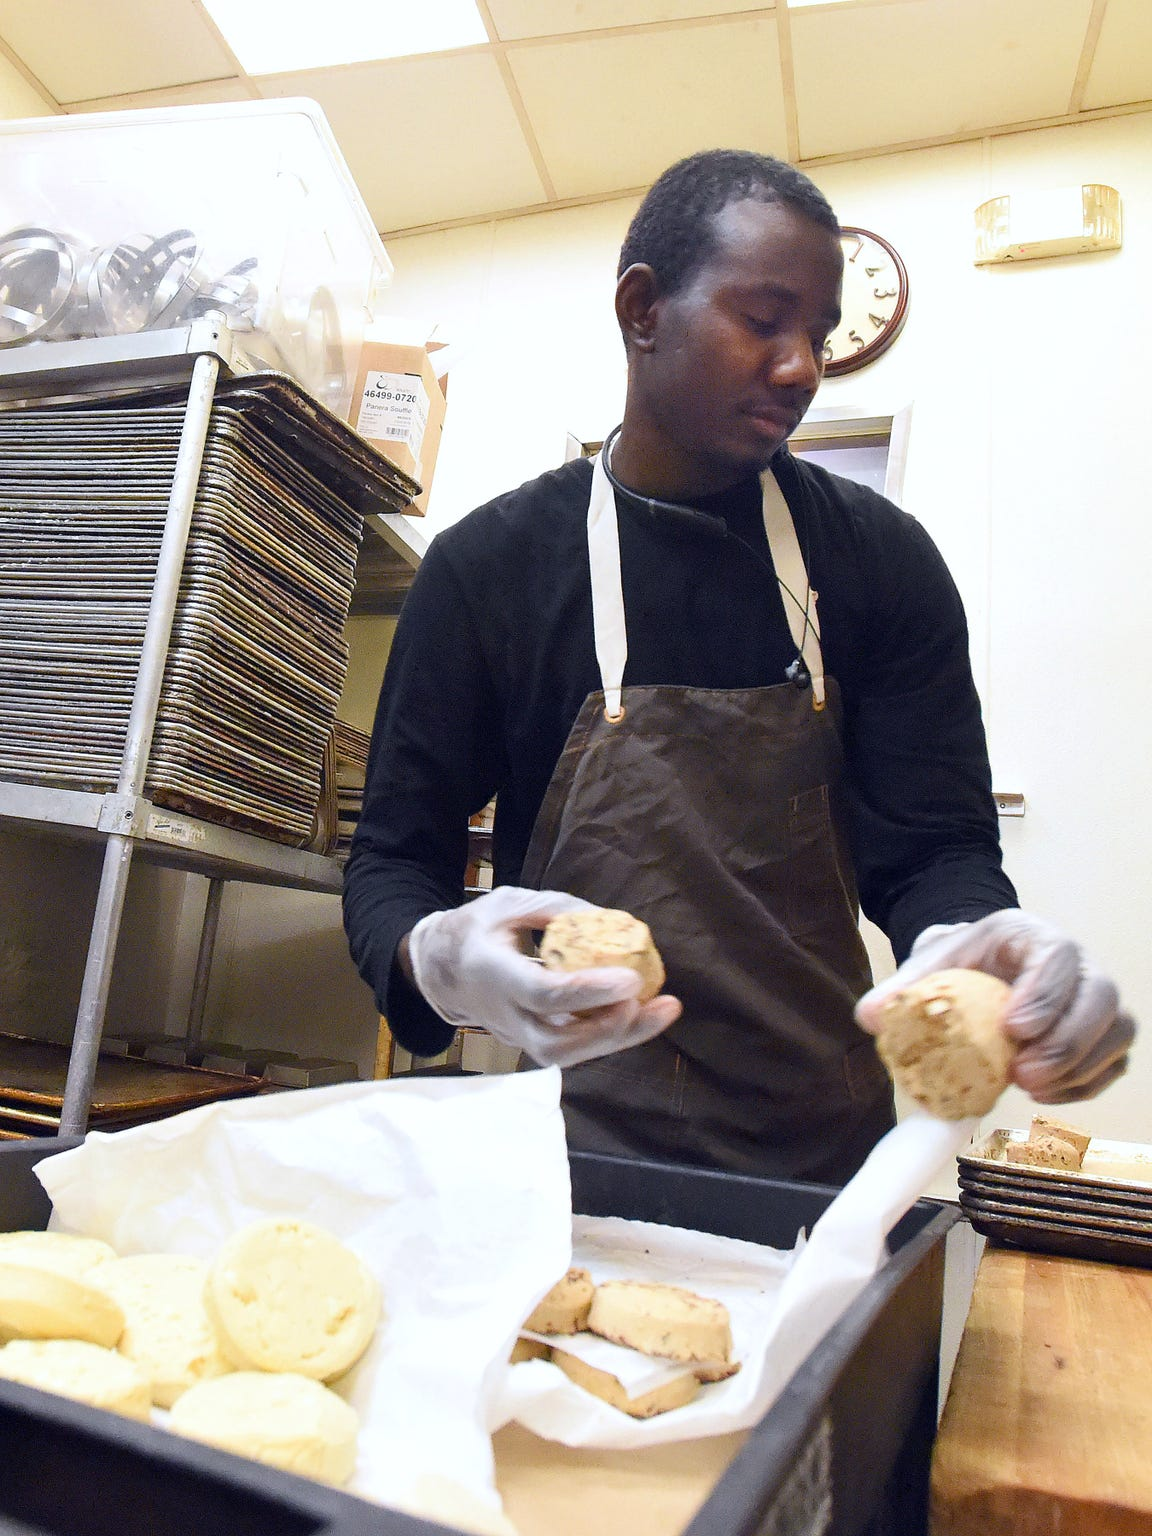 Abdelrahman Abshir works as a baker at Panera Bread in Charlottesville, Va., on Wednesday, May 3, 2017. Having lived in Waynesboro since January, he has been on the move since since he was a boy with the conflict in his home of Darfur, Sudan, pushing him out.